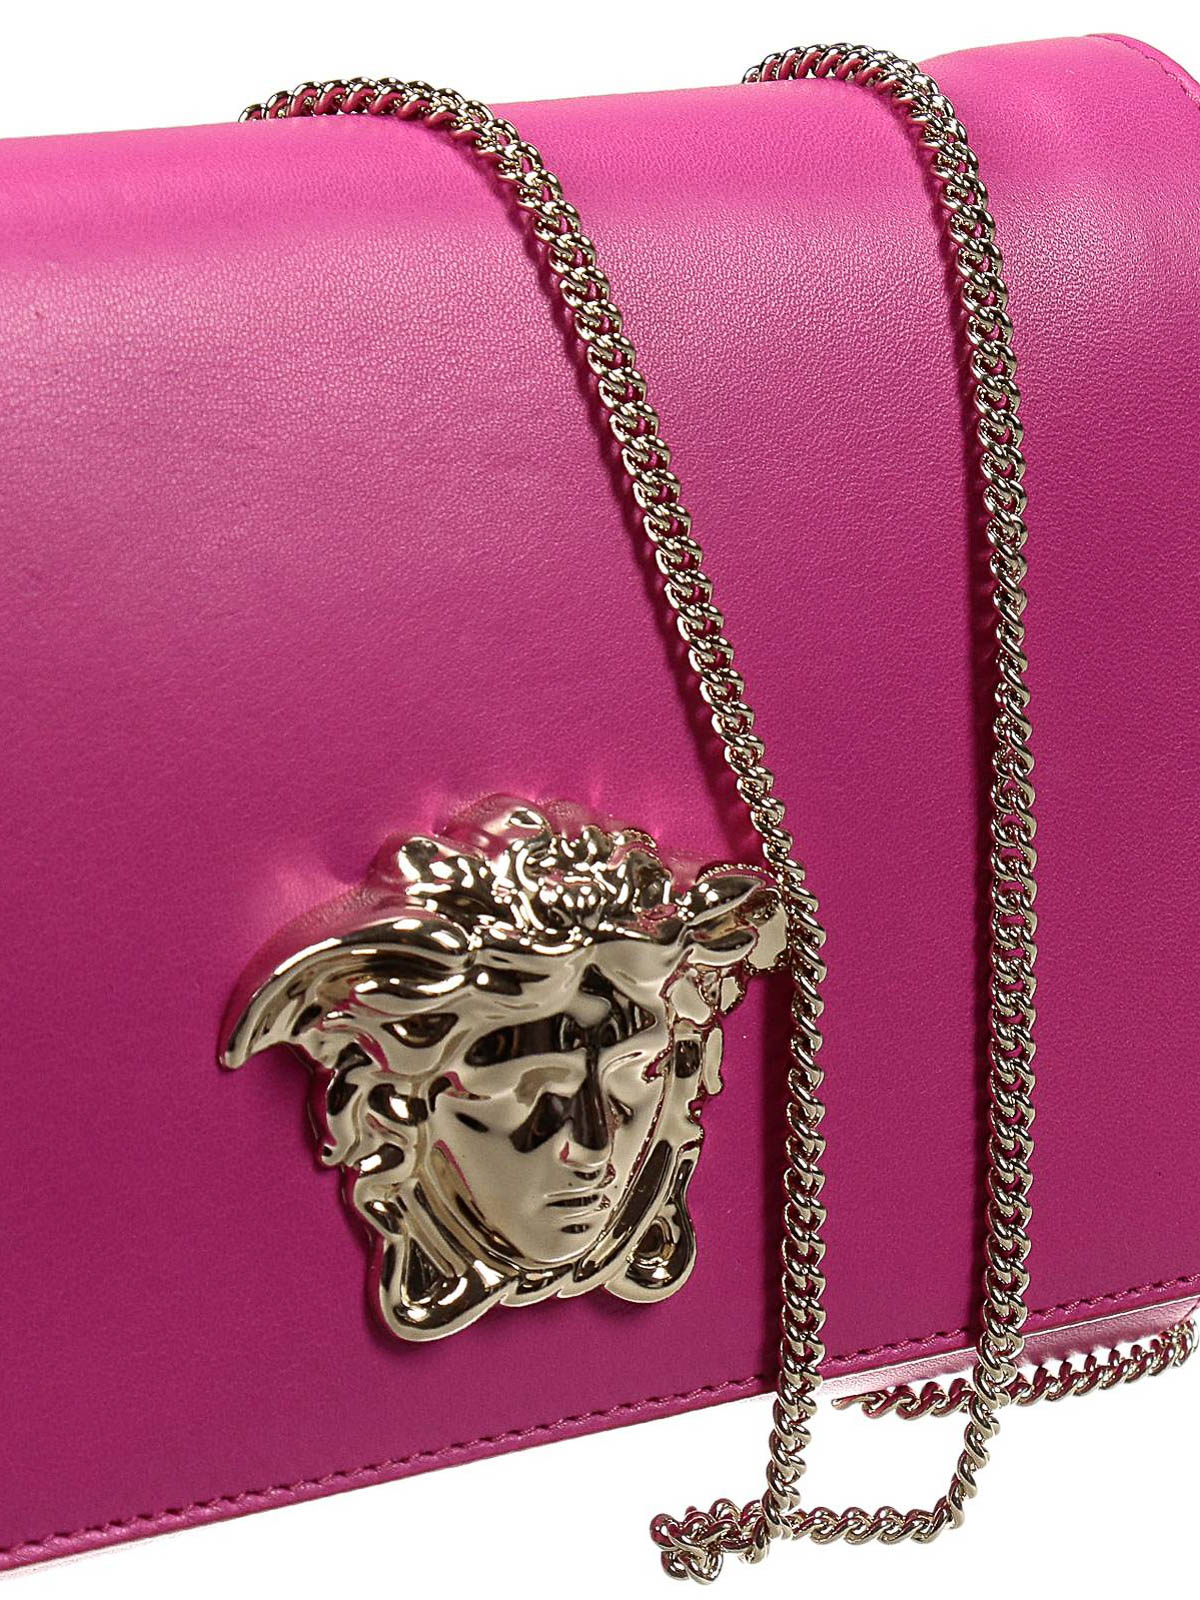 Versace - Palazzo leather Medusa clutch - clutches - DBSE591 DNNAP 343027e3fb1ca